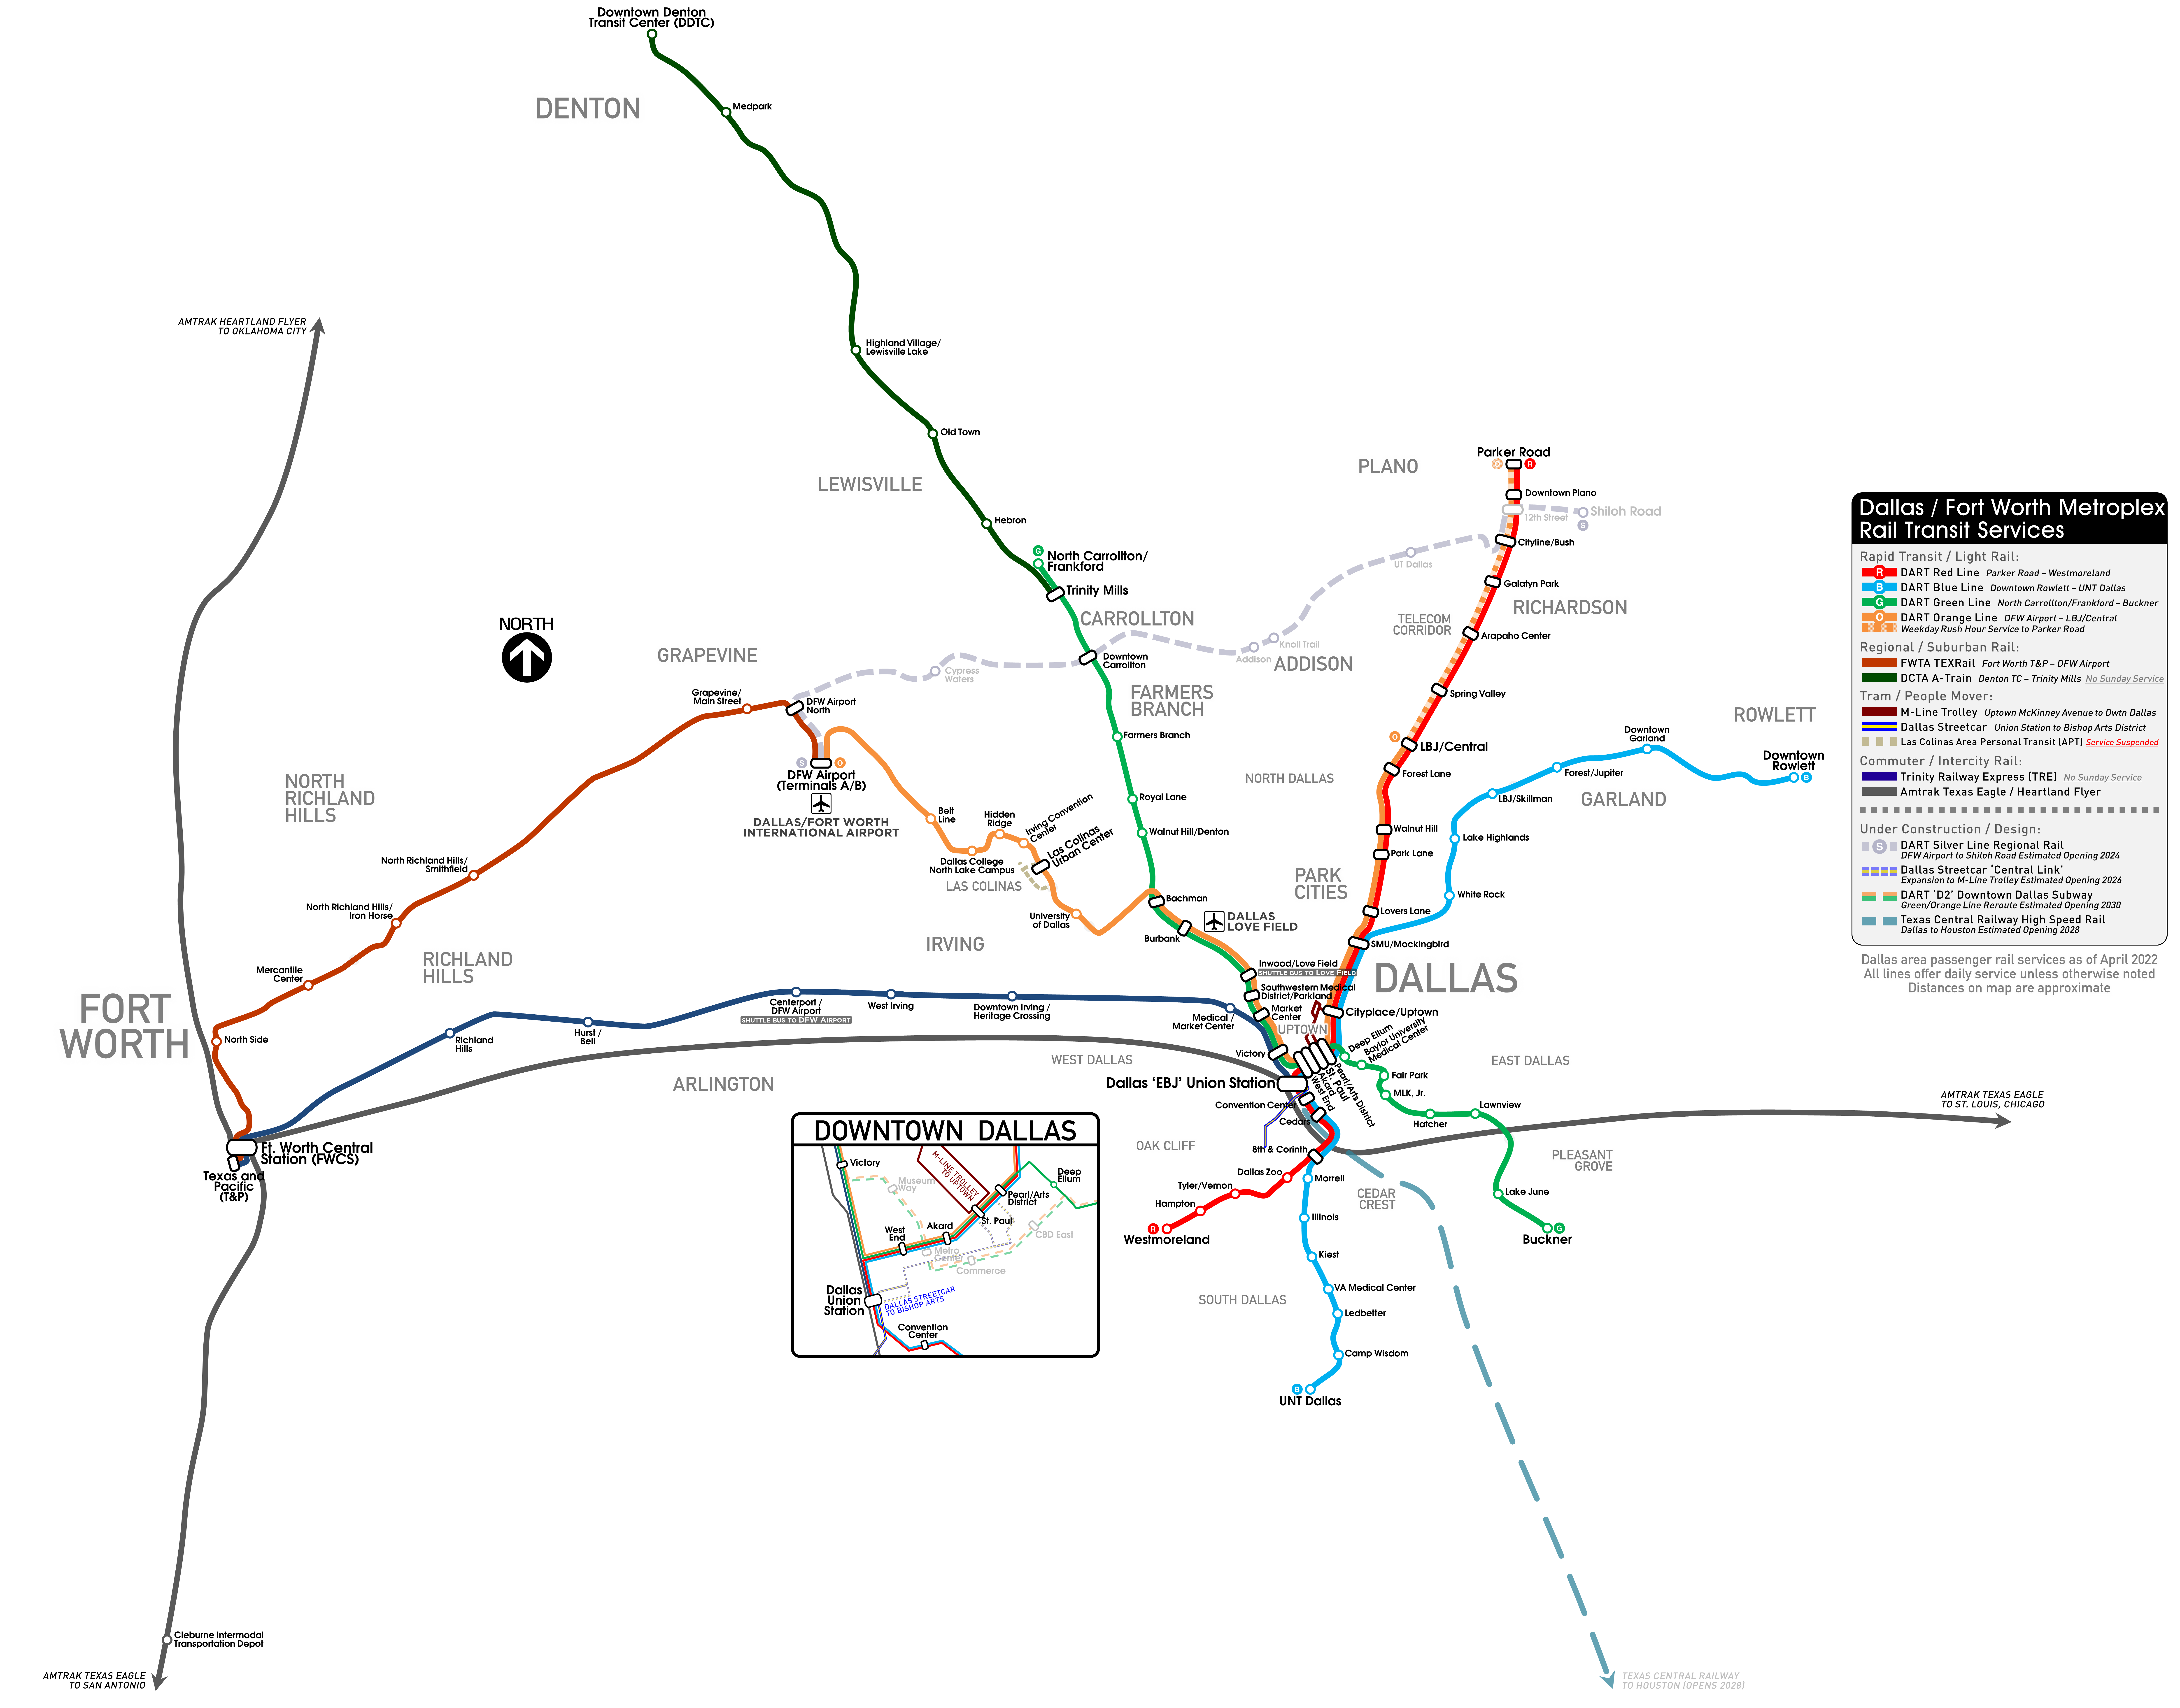 File:Dallas - Fort Worth Metroplex Rail Transit Services Map.png ...